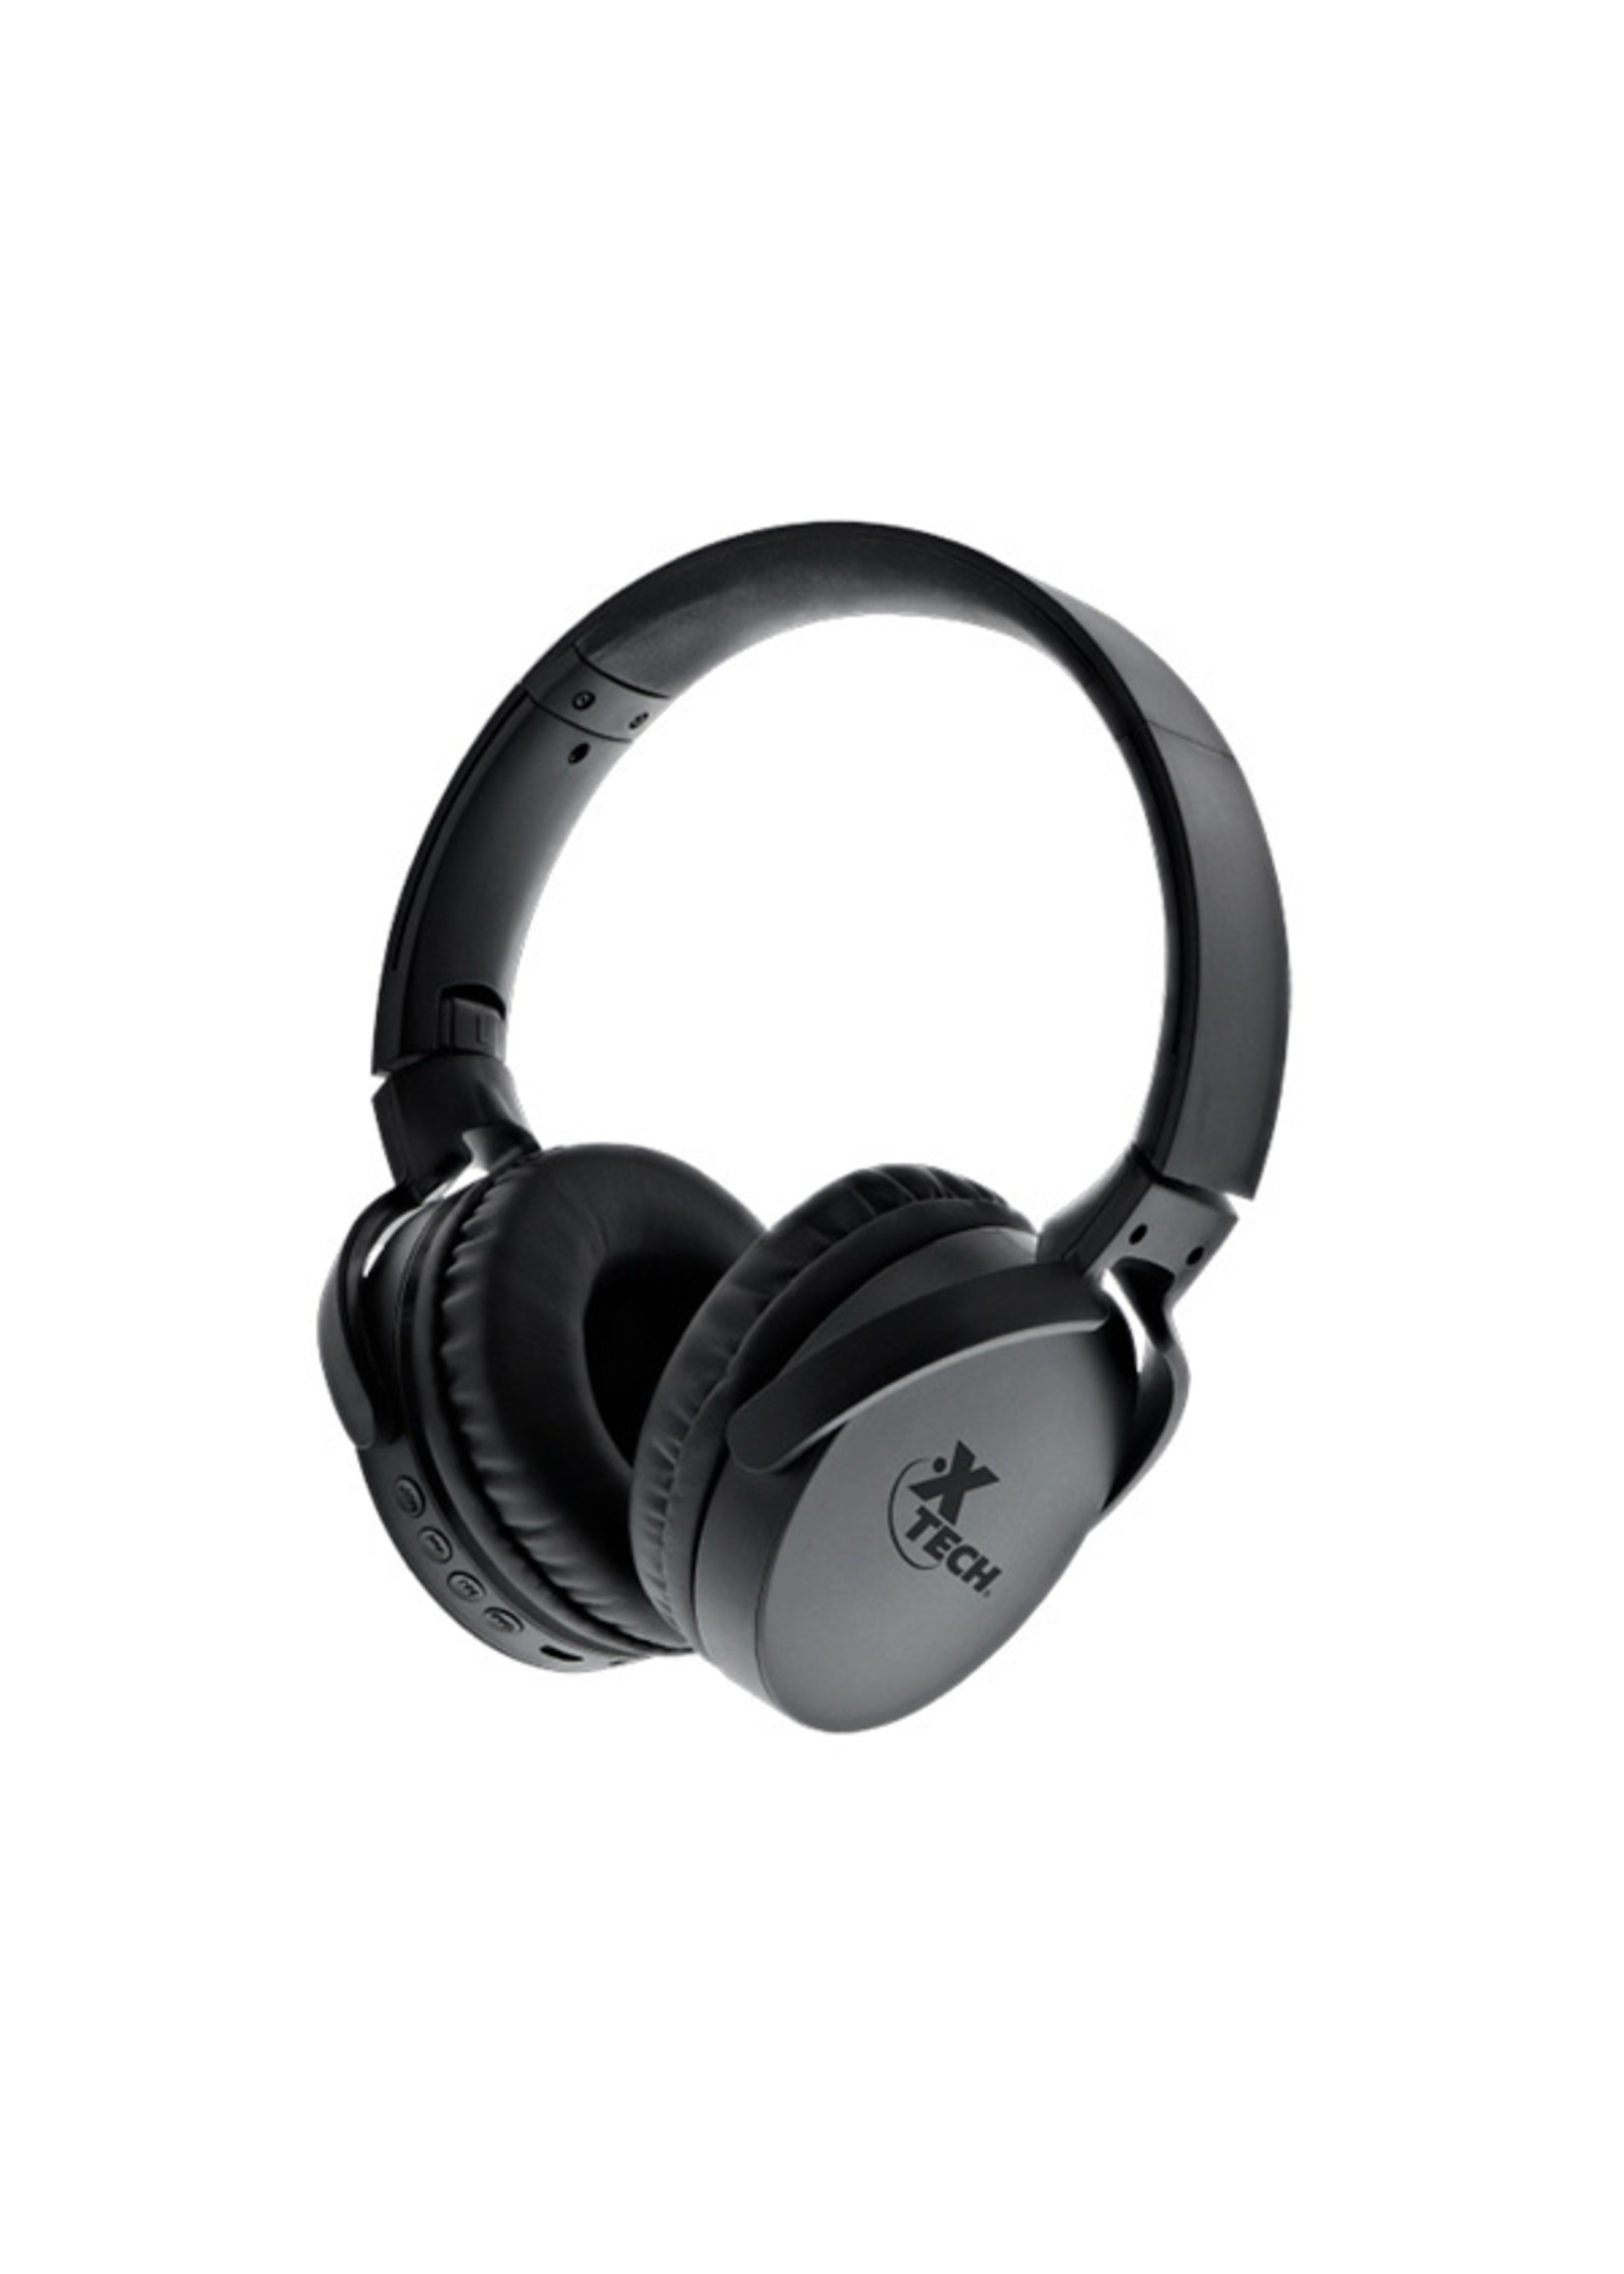 Xtech Insolense Gaming Headset W/Mic